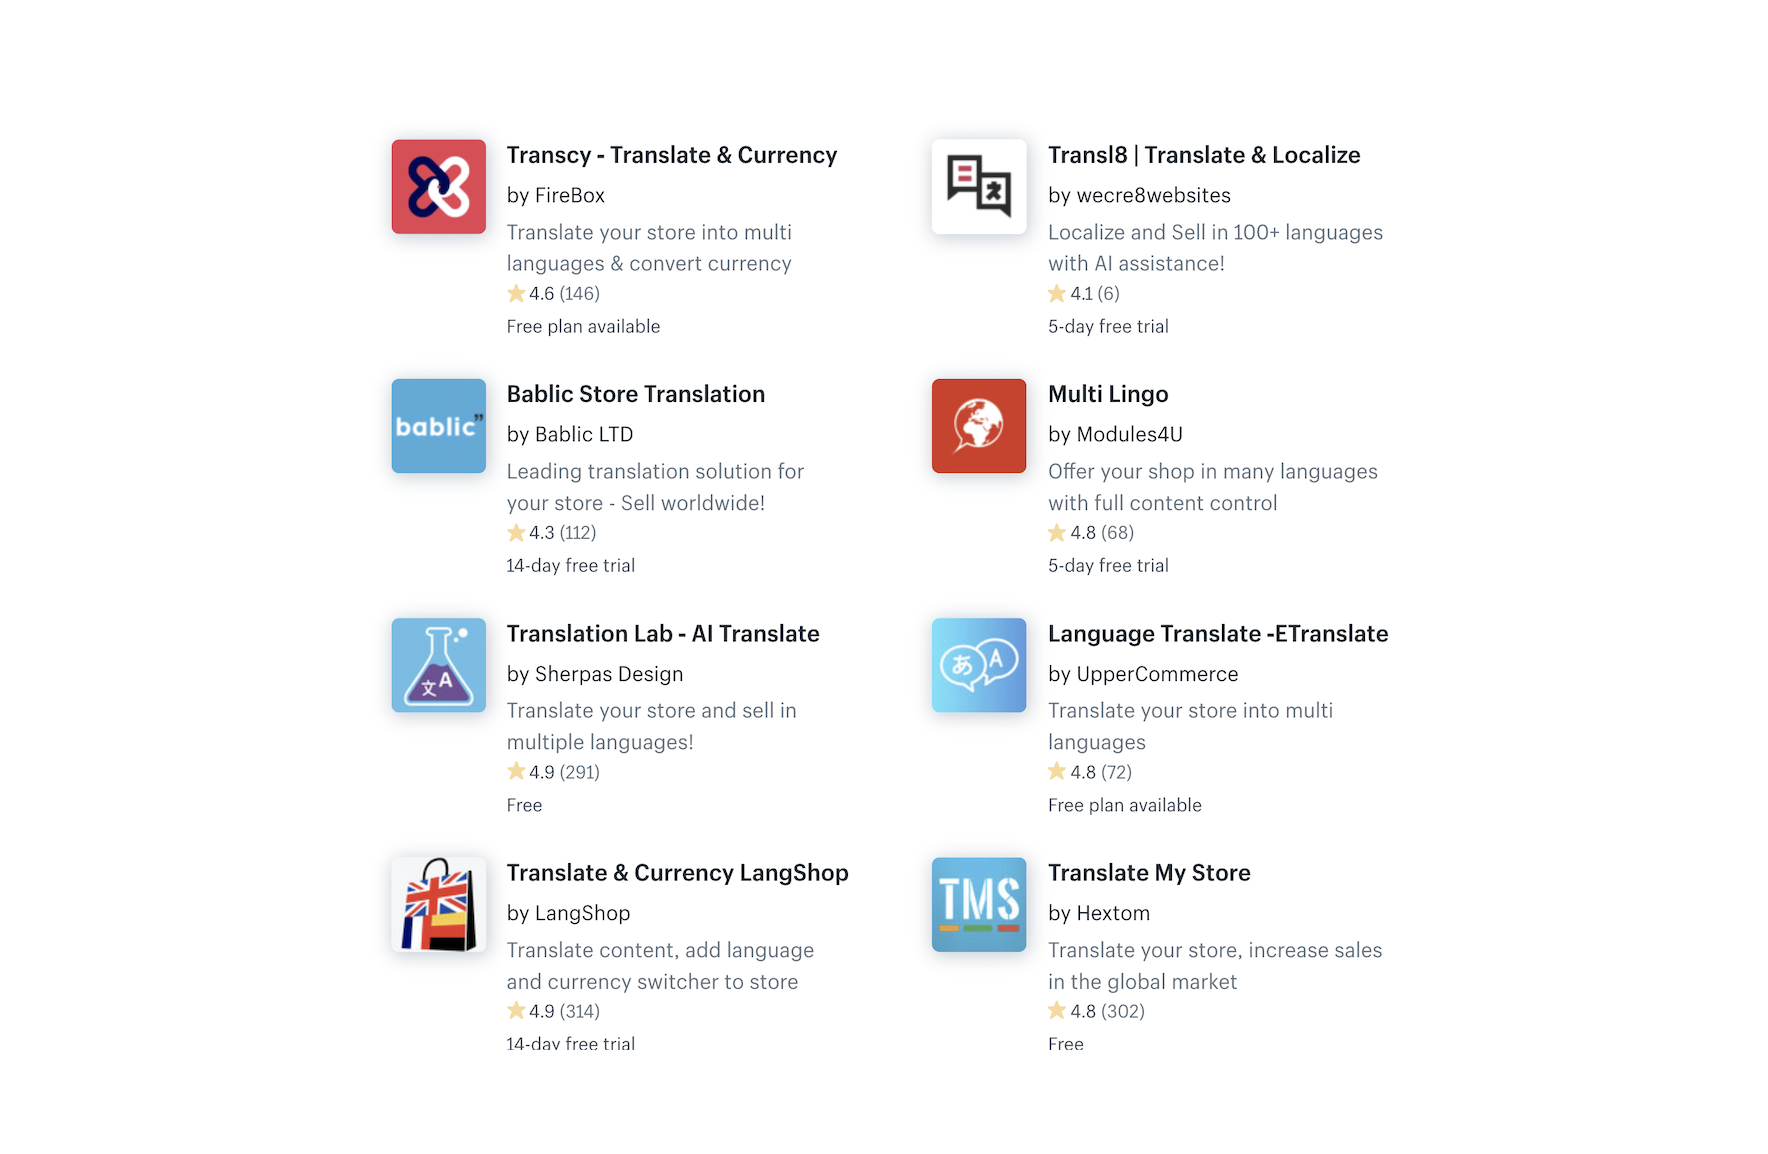 various_approved_apps_for_language_translation.png